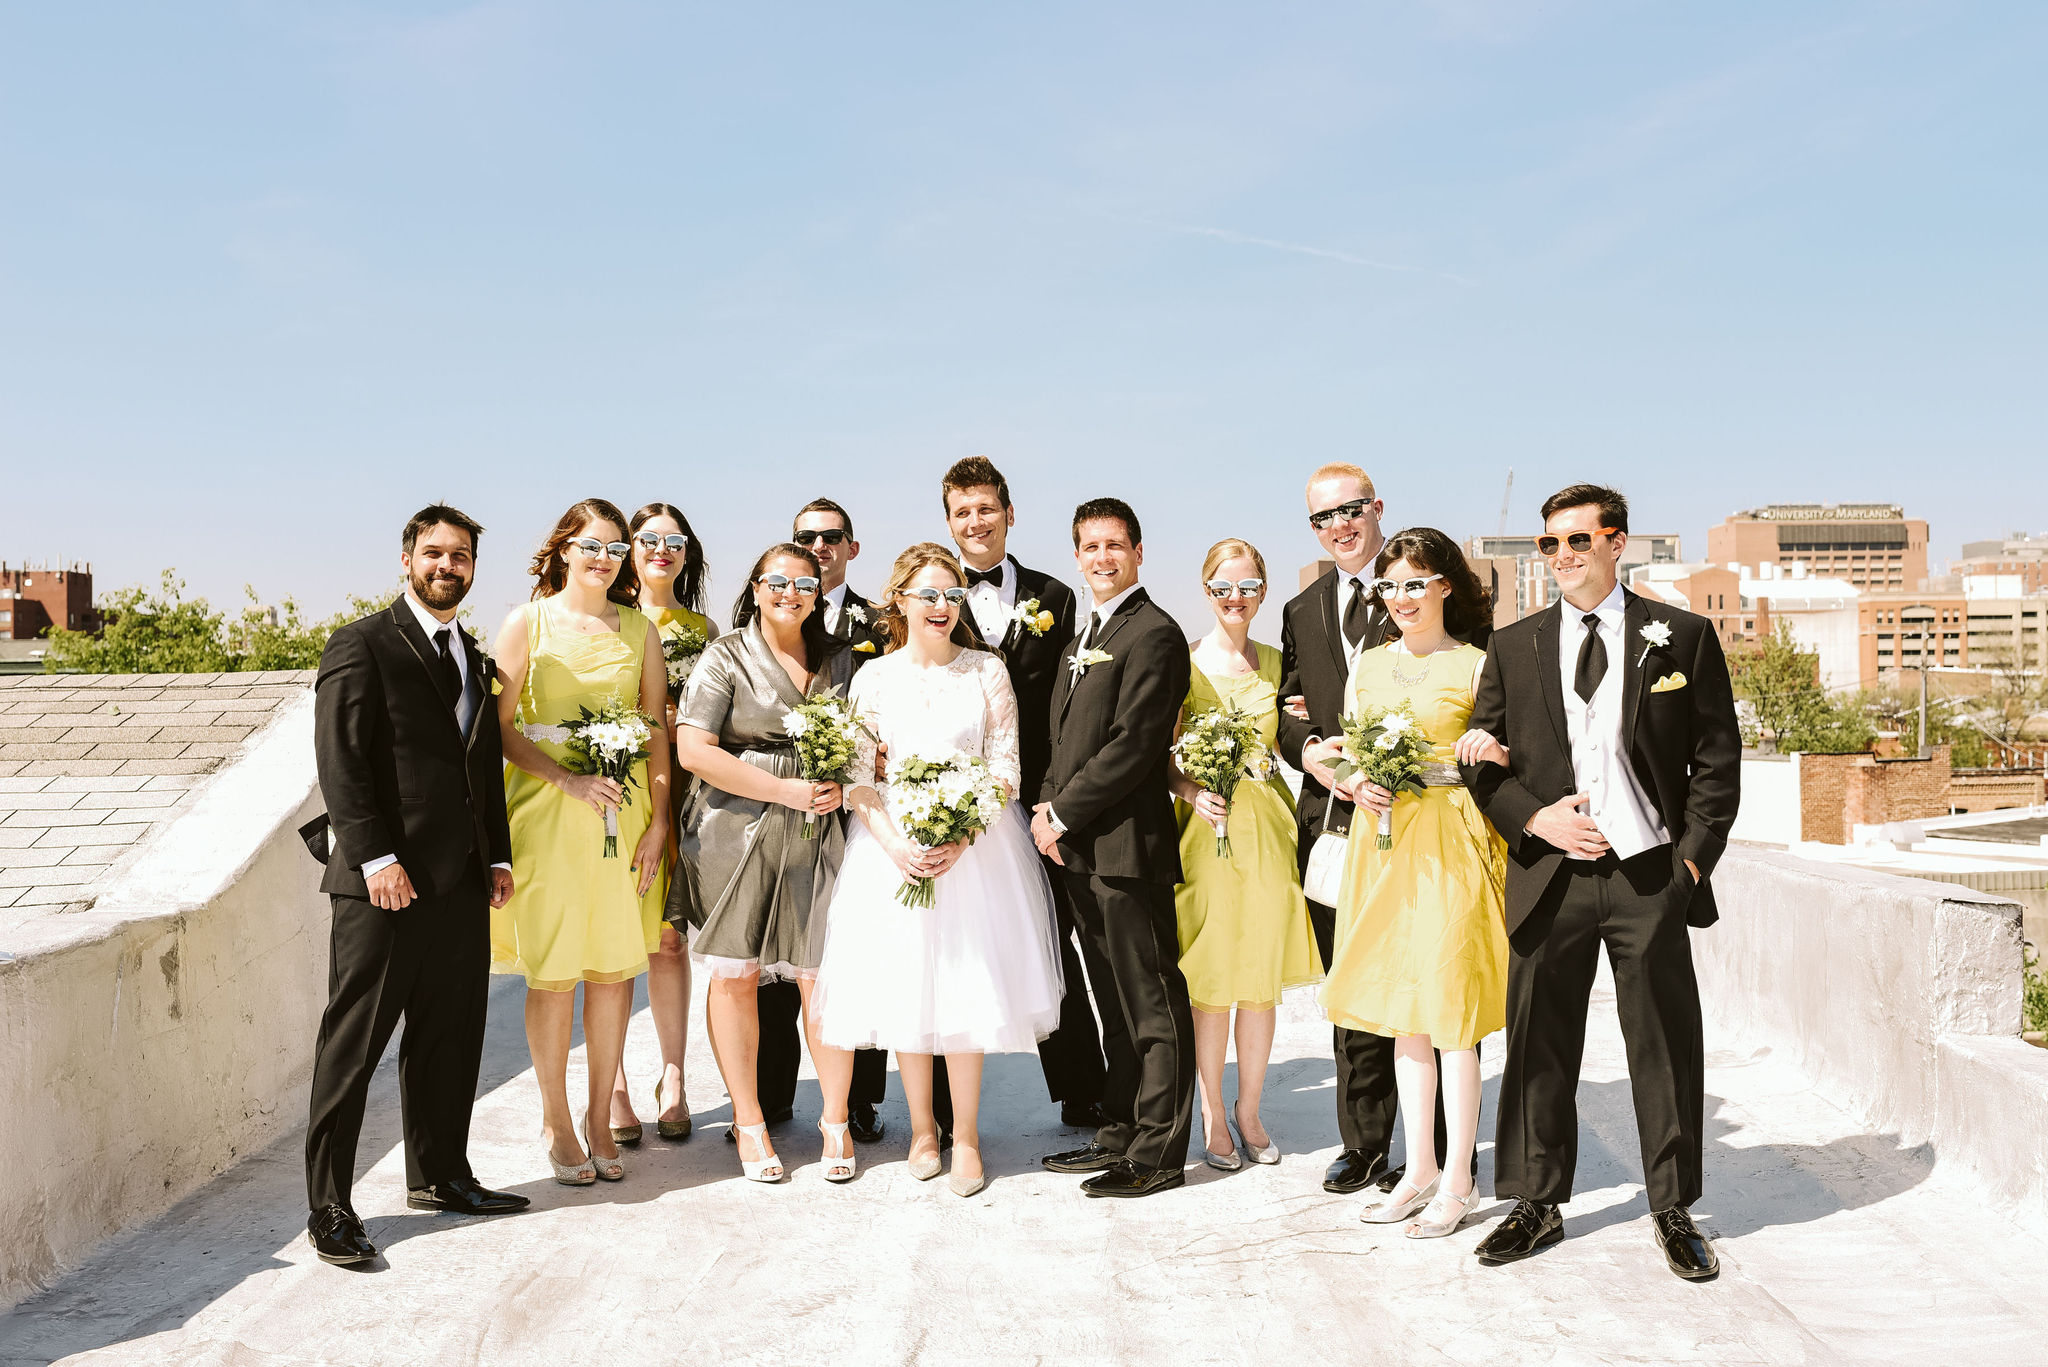 Baltimore, Church Wedding, Maryland Wedding Photographer, Vintage, Classic, 50s Style, Bride and Groom with Bridesmaids and Groomsmen, Portrait Photo on Rooftop, Sunny Day